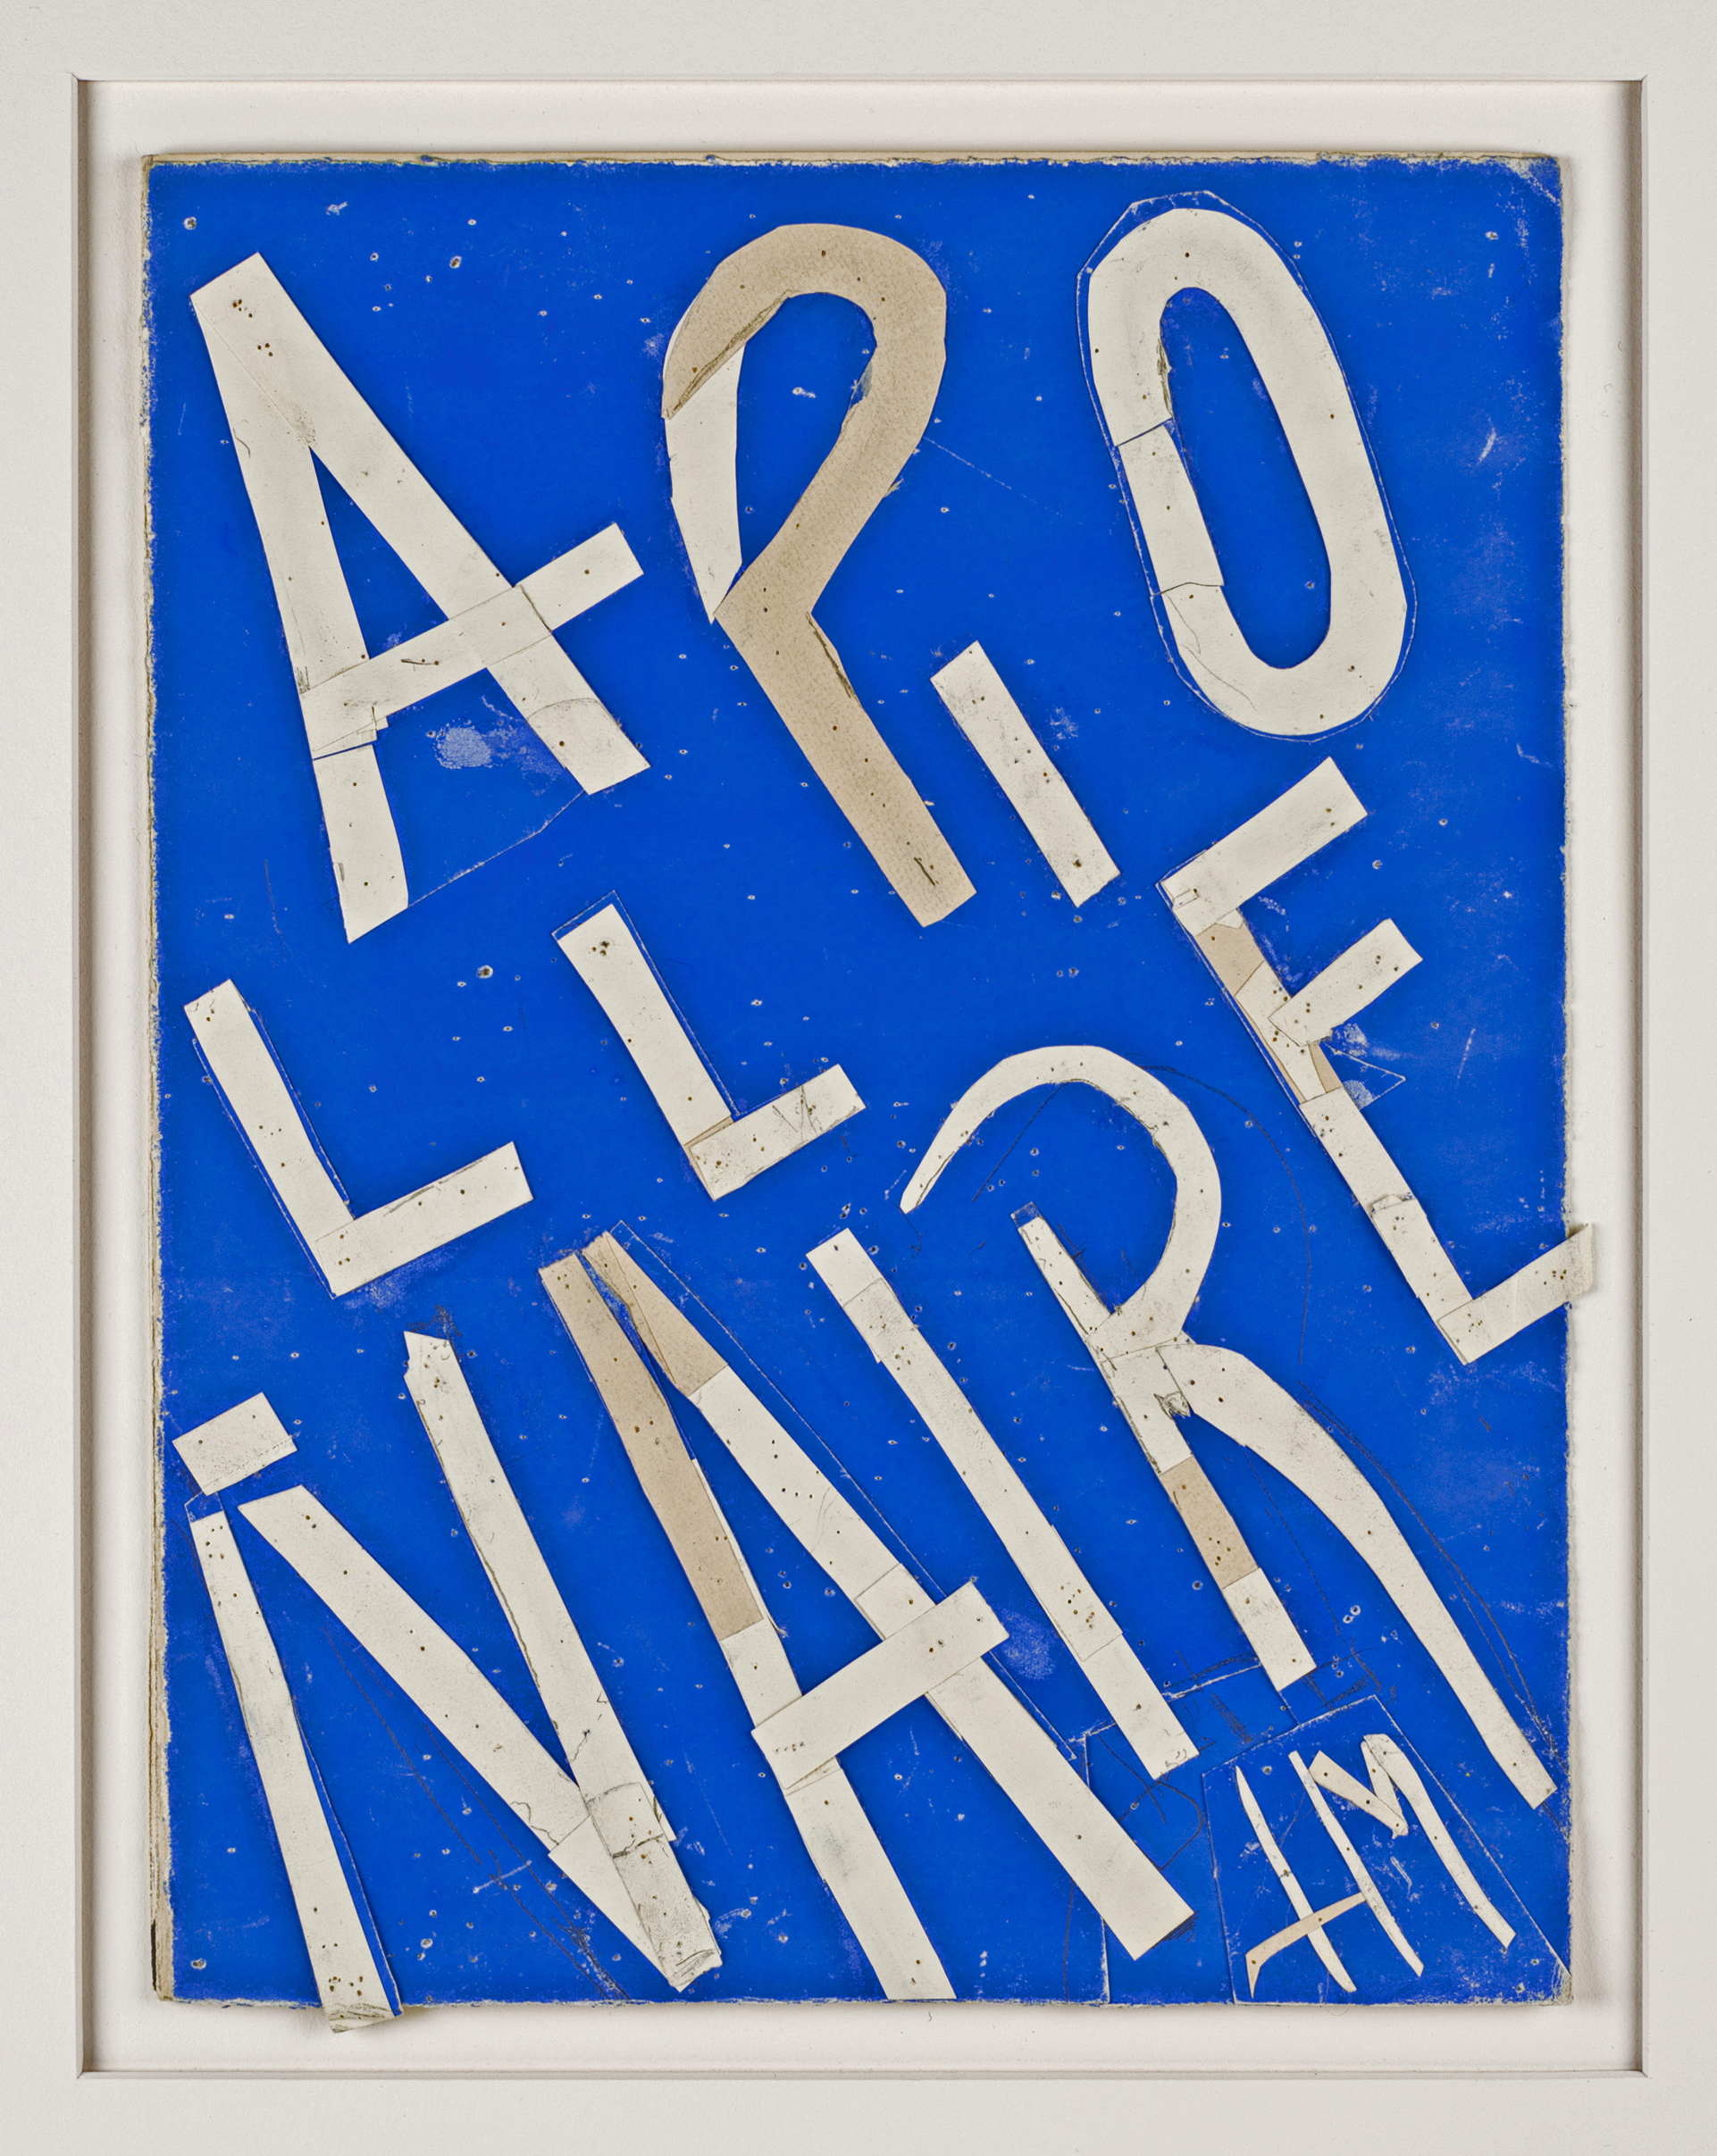 Henri Matisse (1869 - 1954)     Maquette for the cover of the slipcase of the book 'Apollinaire' by André Rouveyre    Gouache on paper, cut and pasted, 1951-52     Exhibited   'Henri Matisse: The Cut-Outs', Tate Modern, London, 17 April- 7 September 2014, illustrated p 191.  'Henri Matisse: The Cut-Outs', Museum of Modern Art, New York, 12 October 2014 - 10 February 2015.